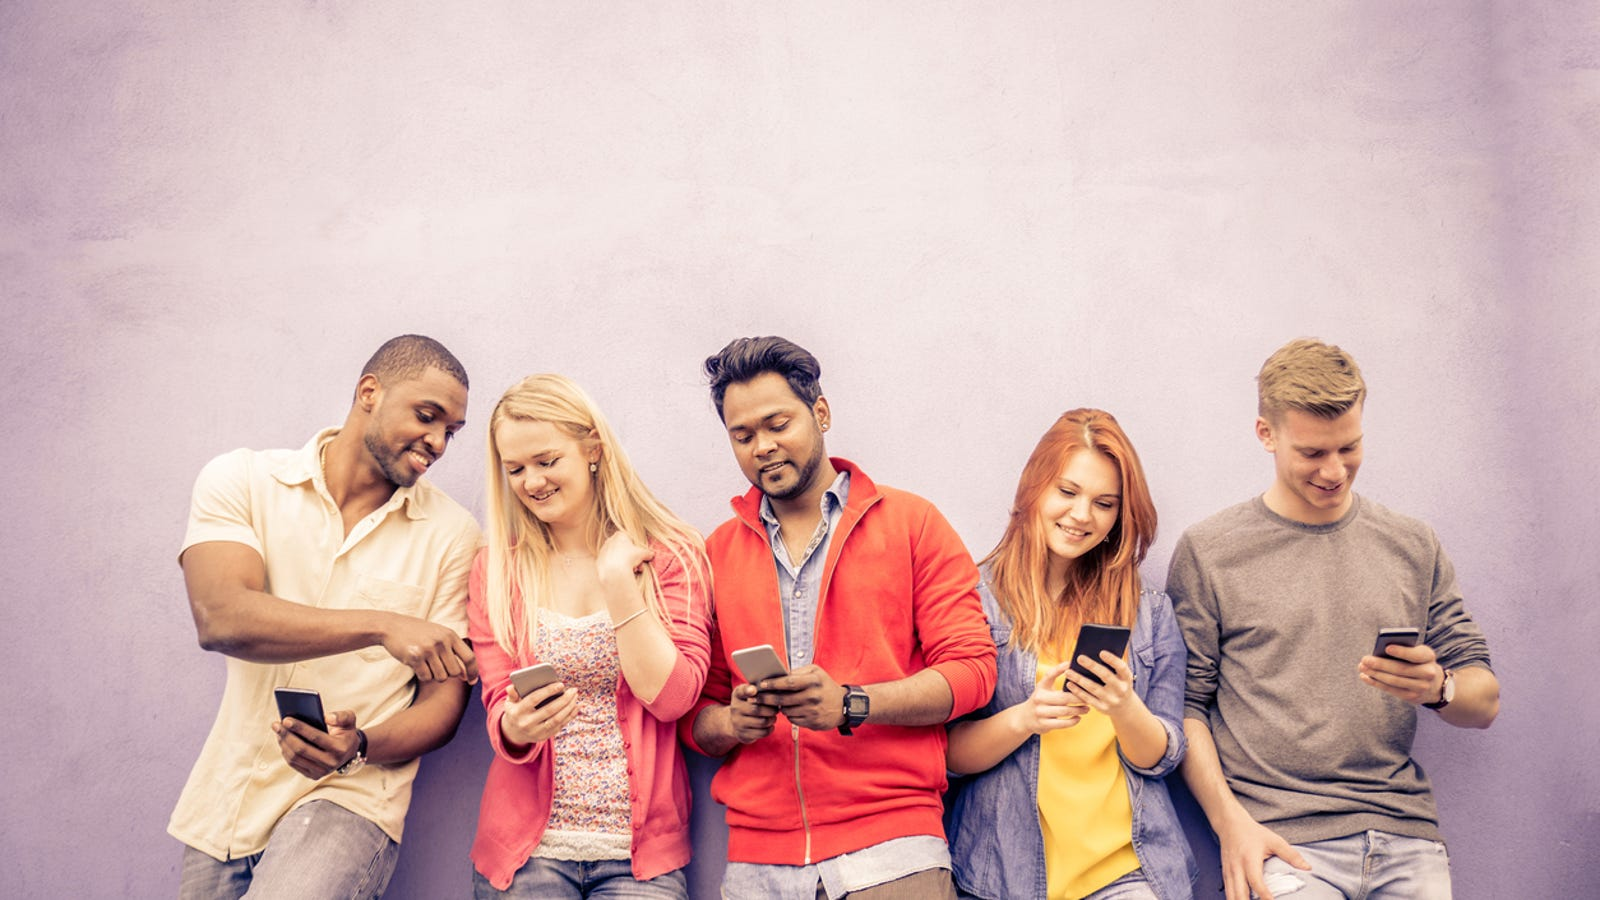 on social media and real life virtual friendships